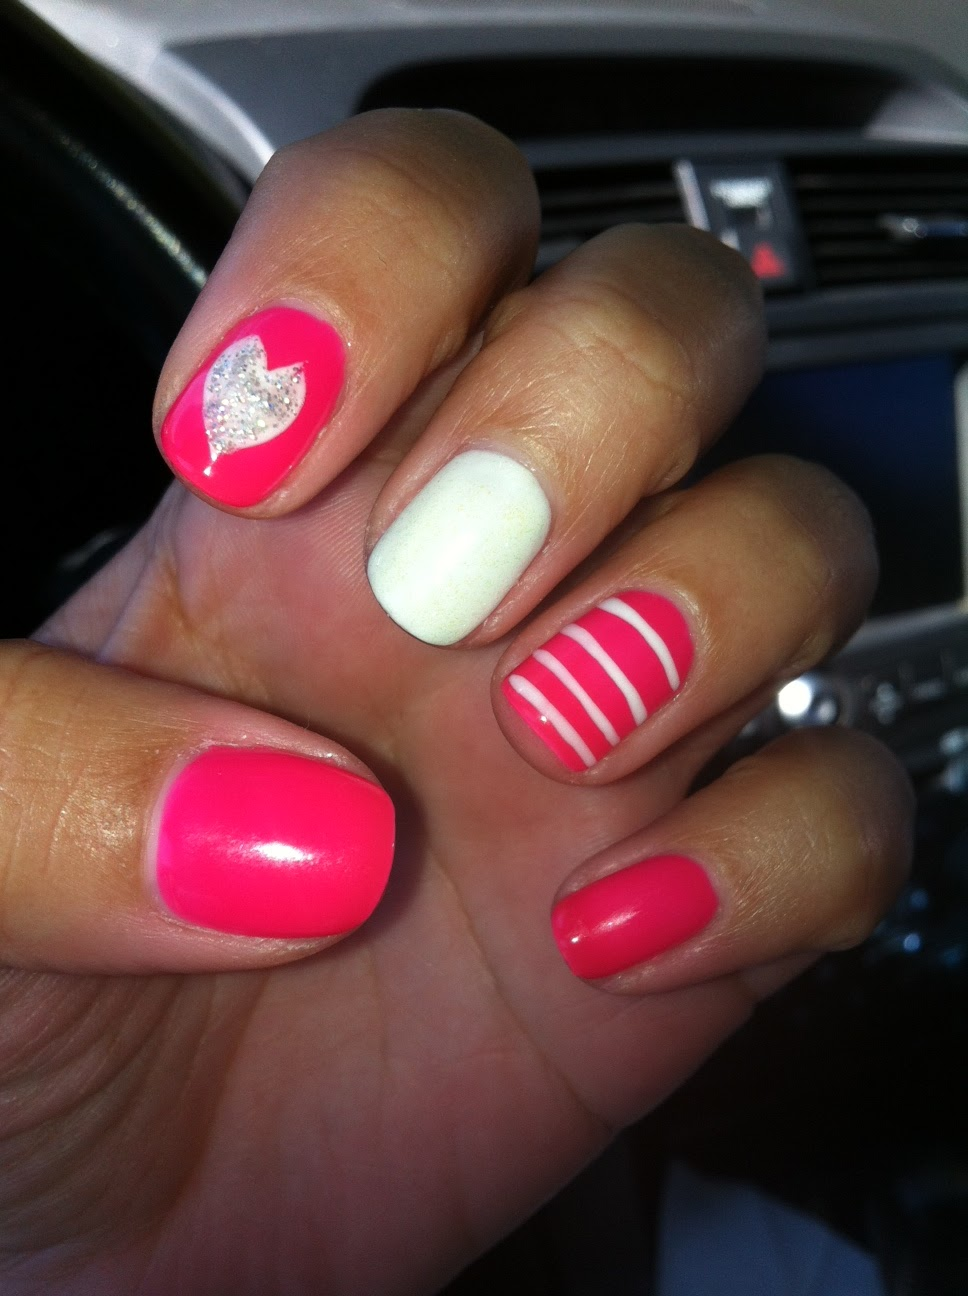 Shellac - two weeks of fine manicure